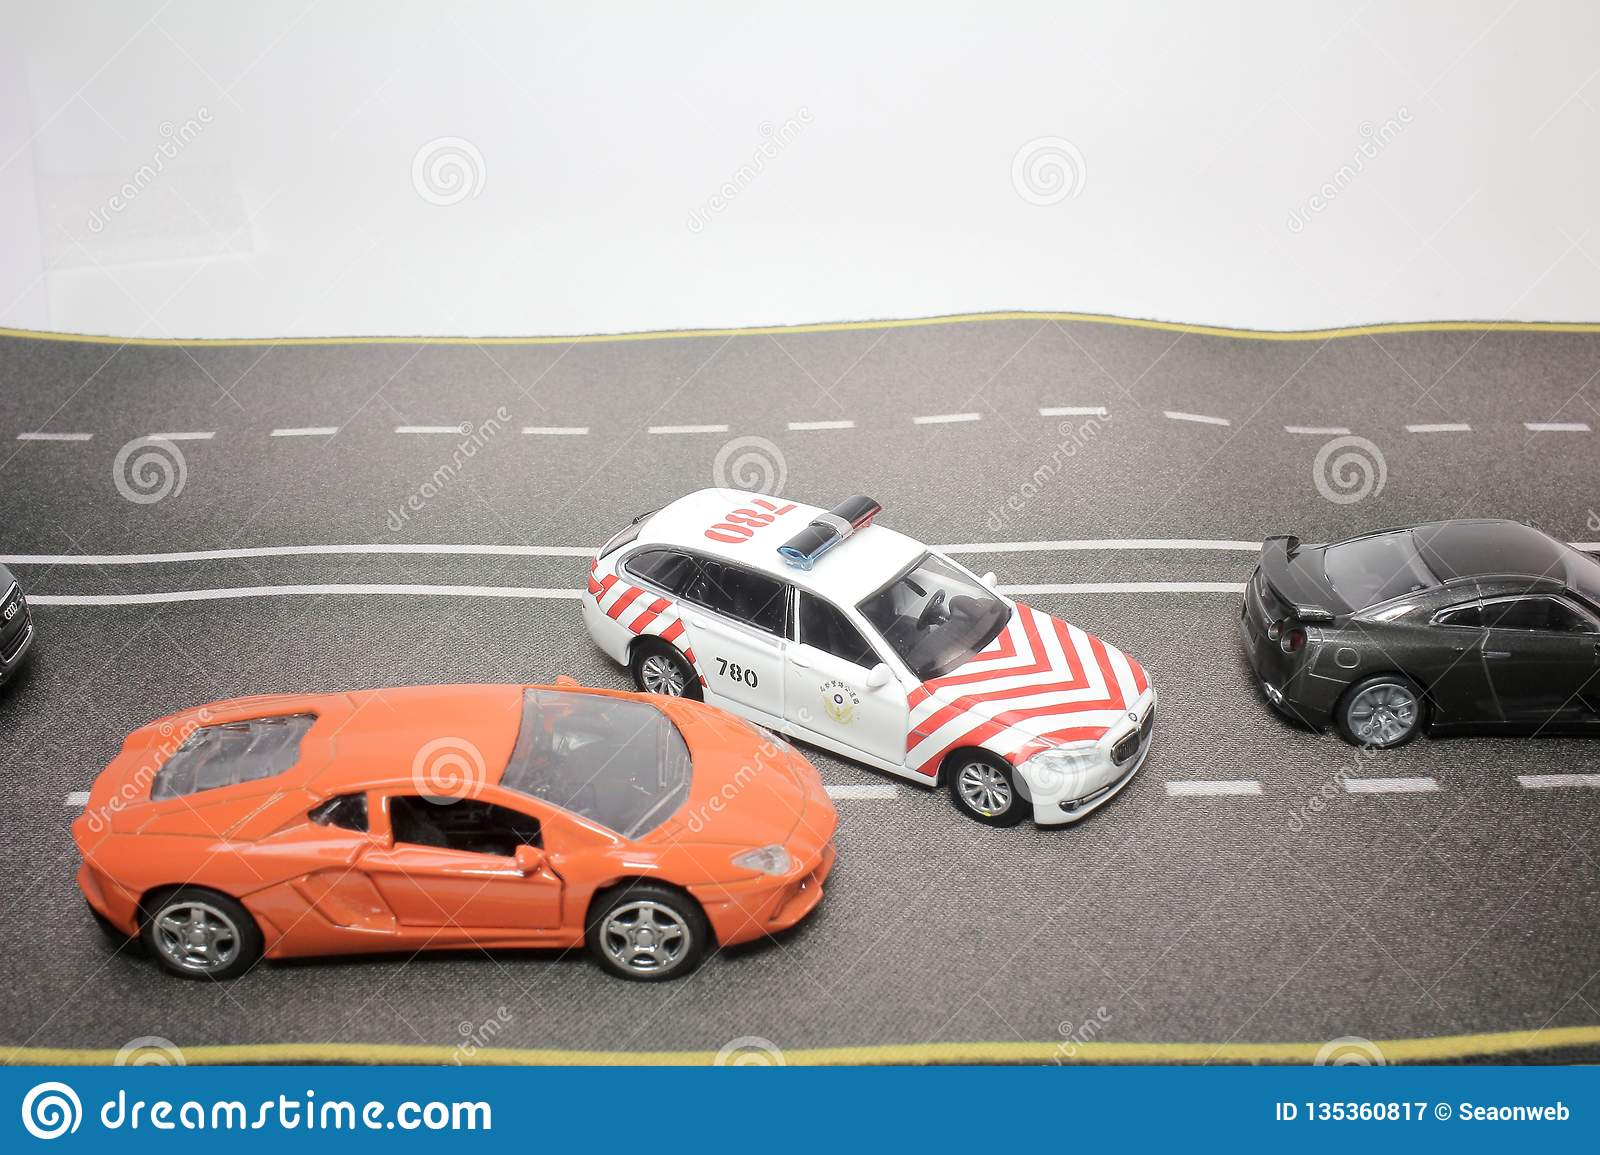 A Scale Of Traffic A Police Car Stock Image - Image of